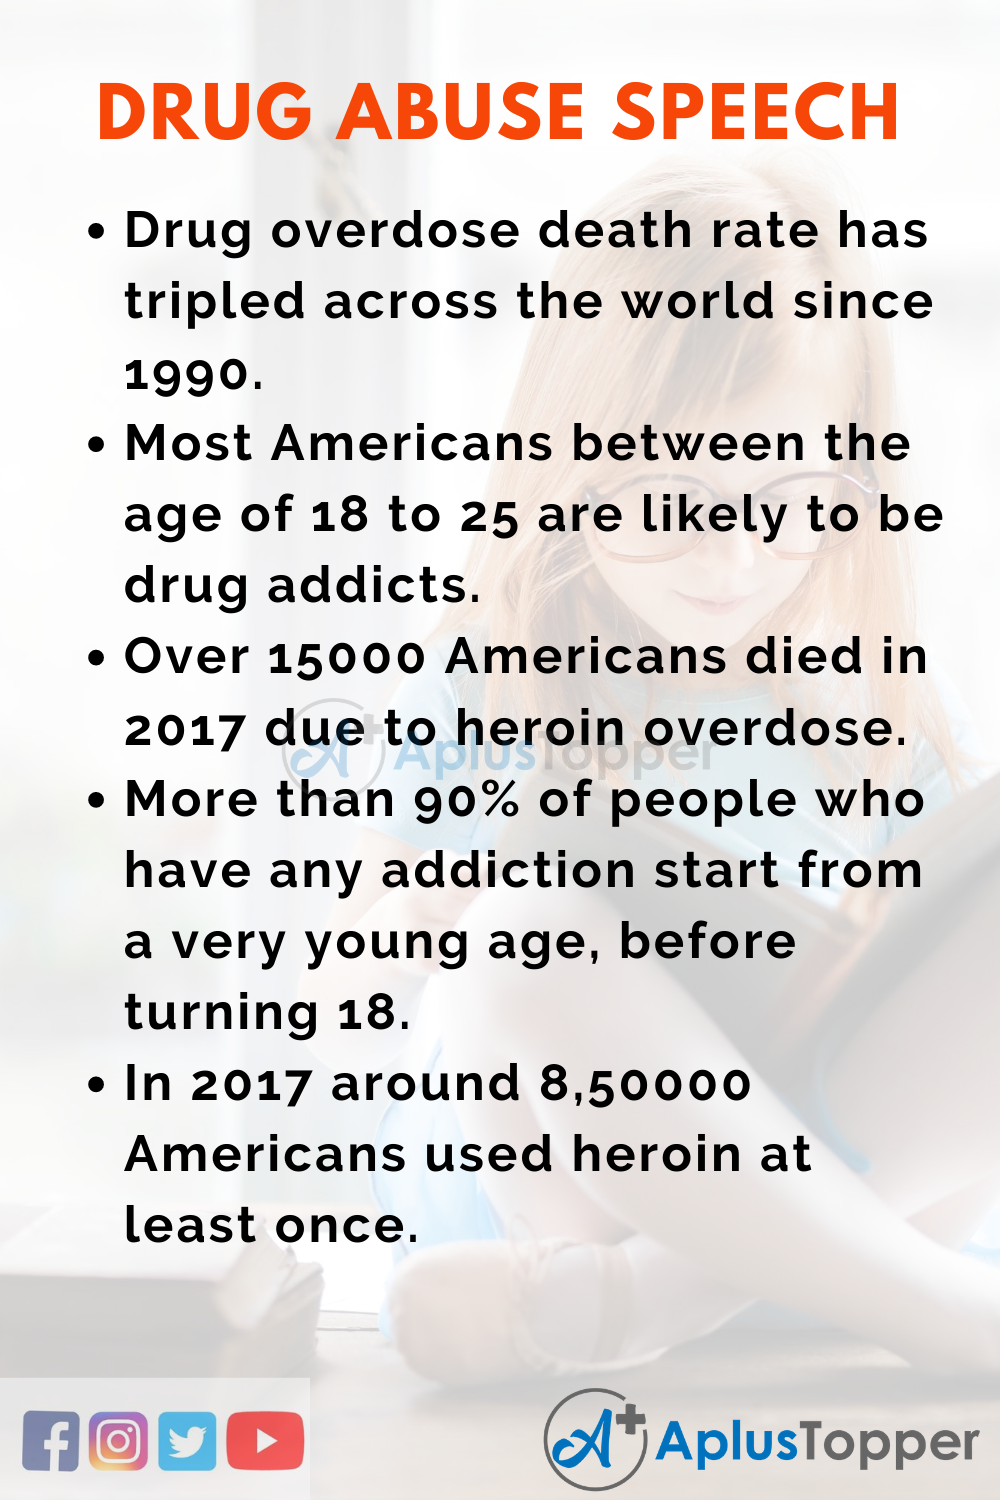 Short Speech On Drug Abuse 150 Words In English